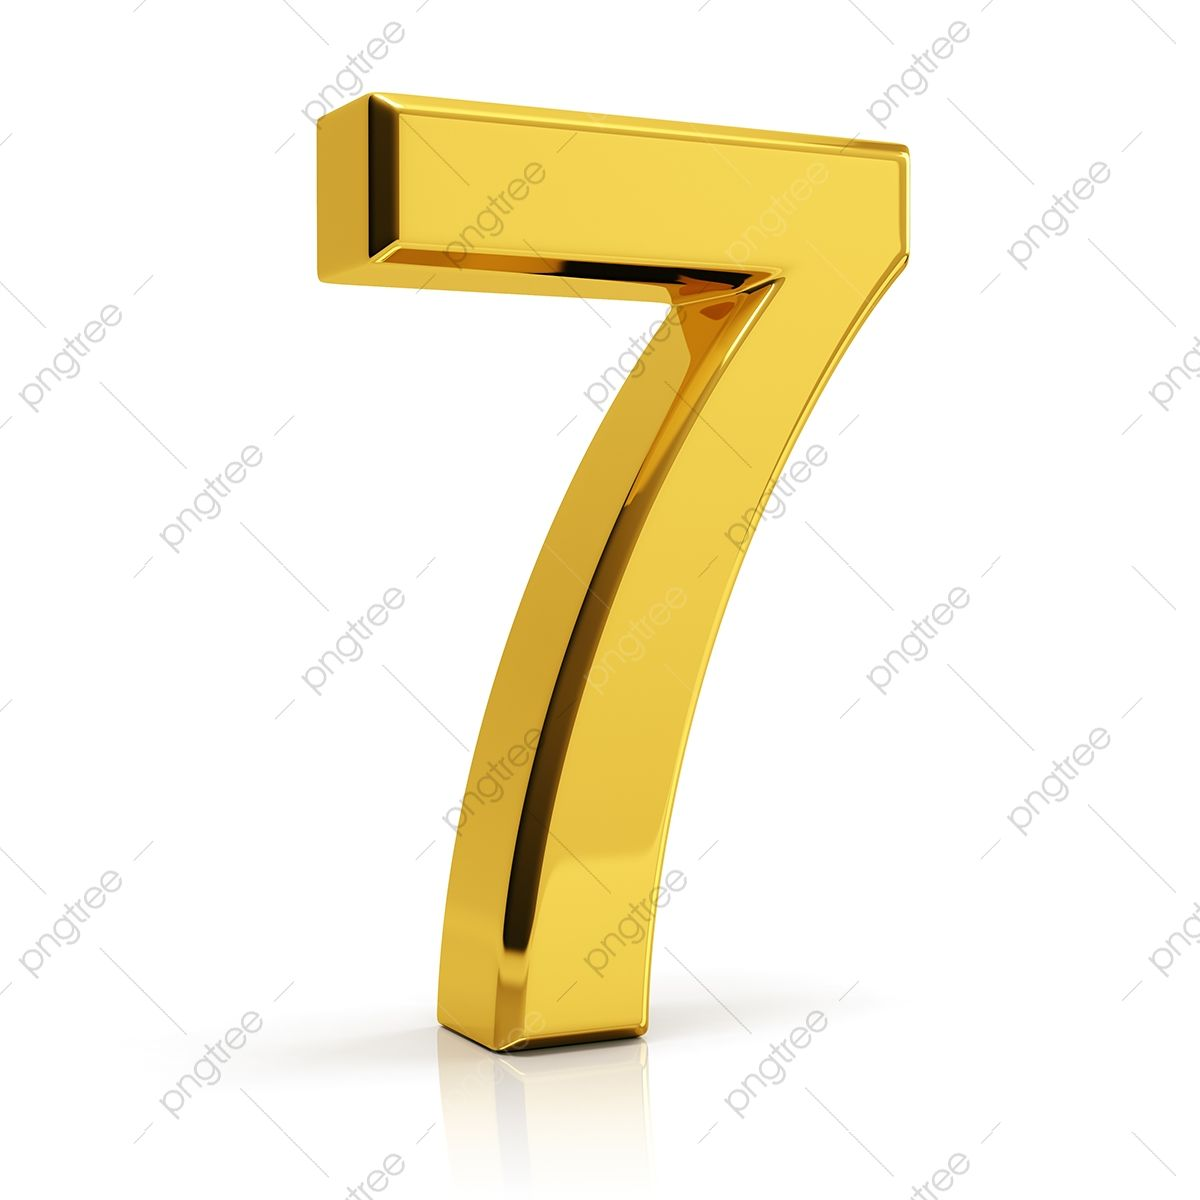 Gold Number 7 7 Number Number 7 Png Transparent Clipart Image And Psd File For Free Download In 2021 Gold Number Clipart Images Clip Art